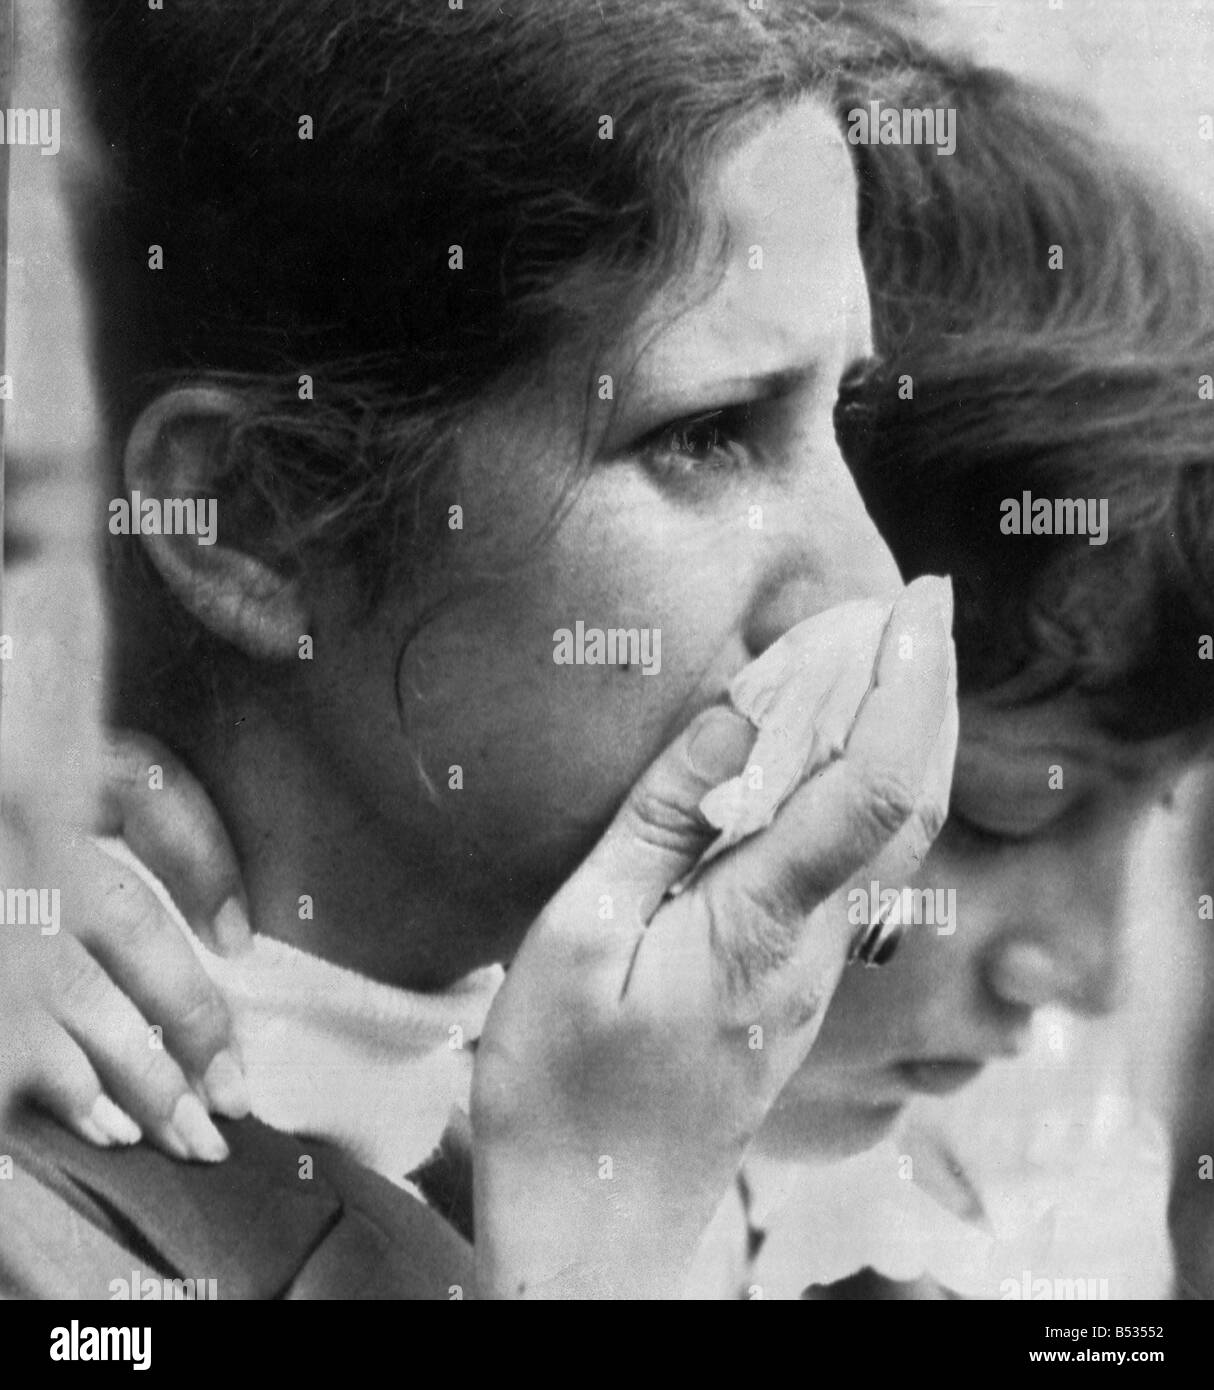 Munich 1972 Olympic Games;Israeli swimmer Shlomit Nir in tears at the end of the memorial service at the Olympic - Stock Image